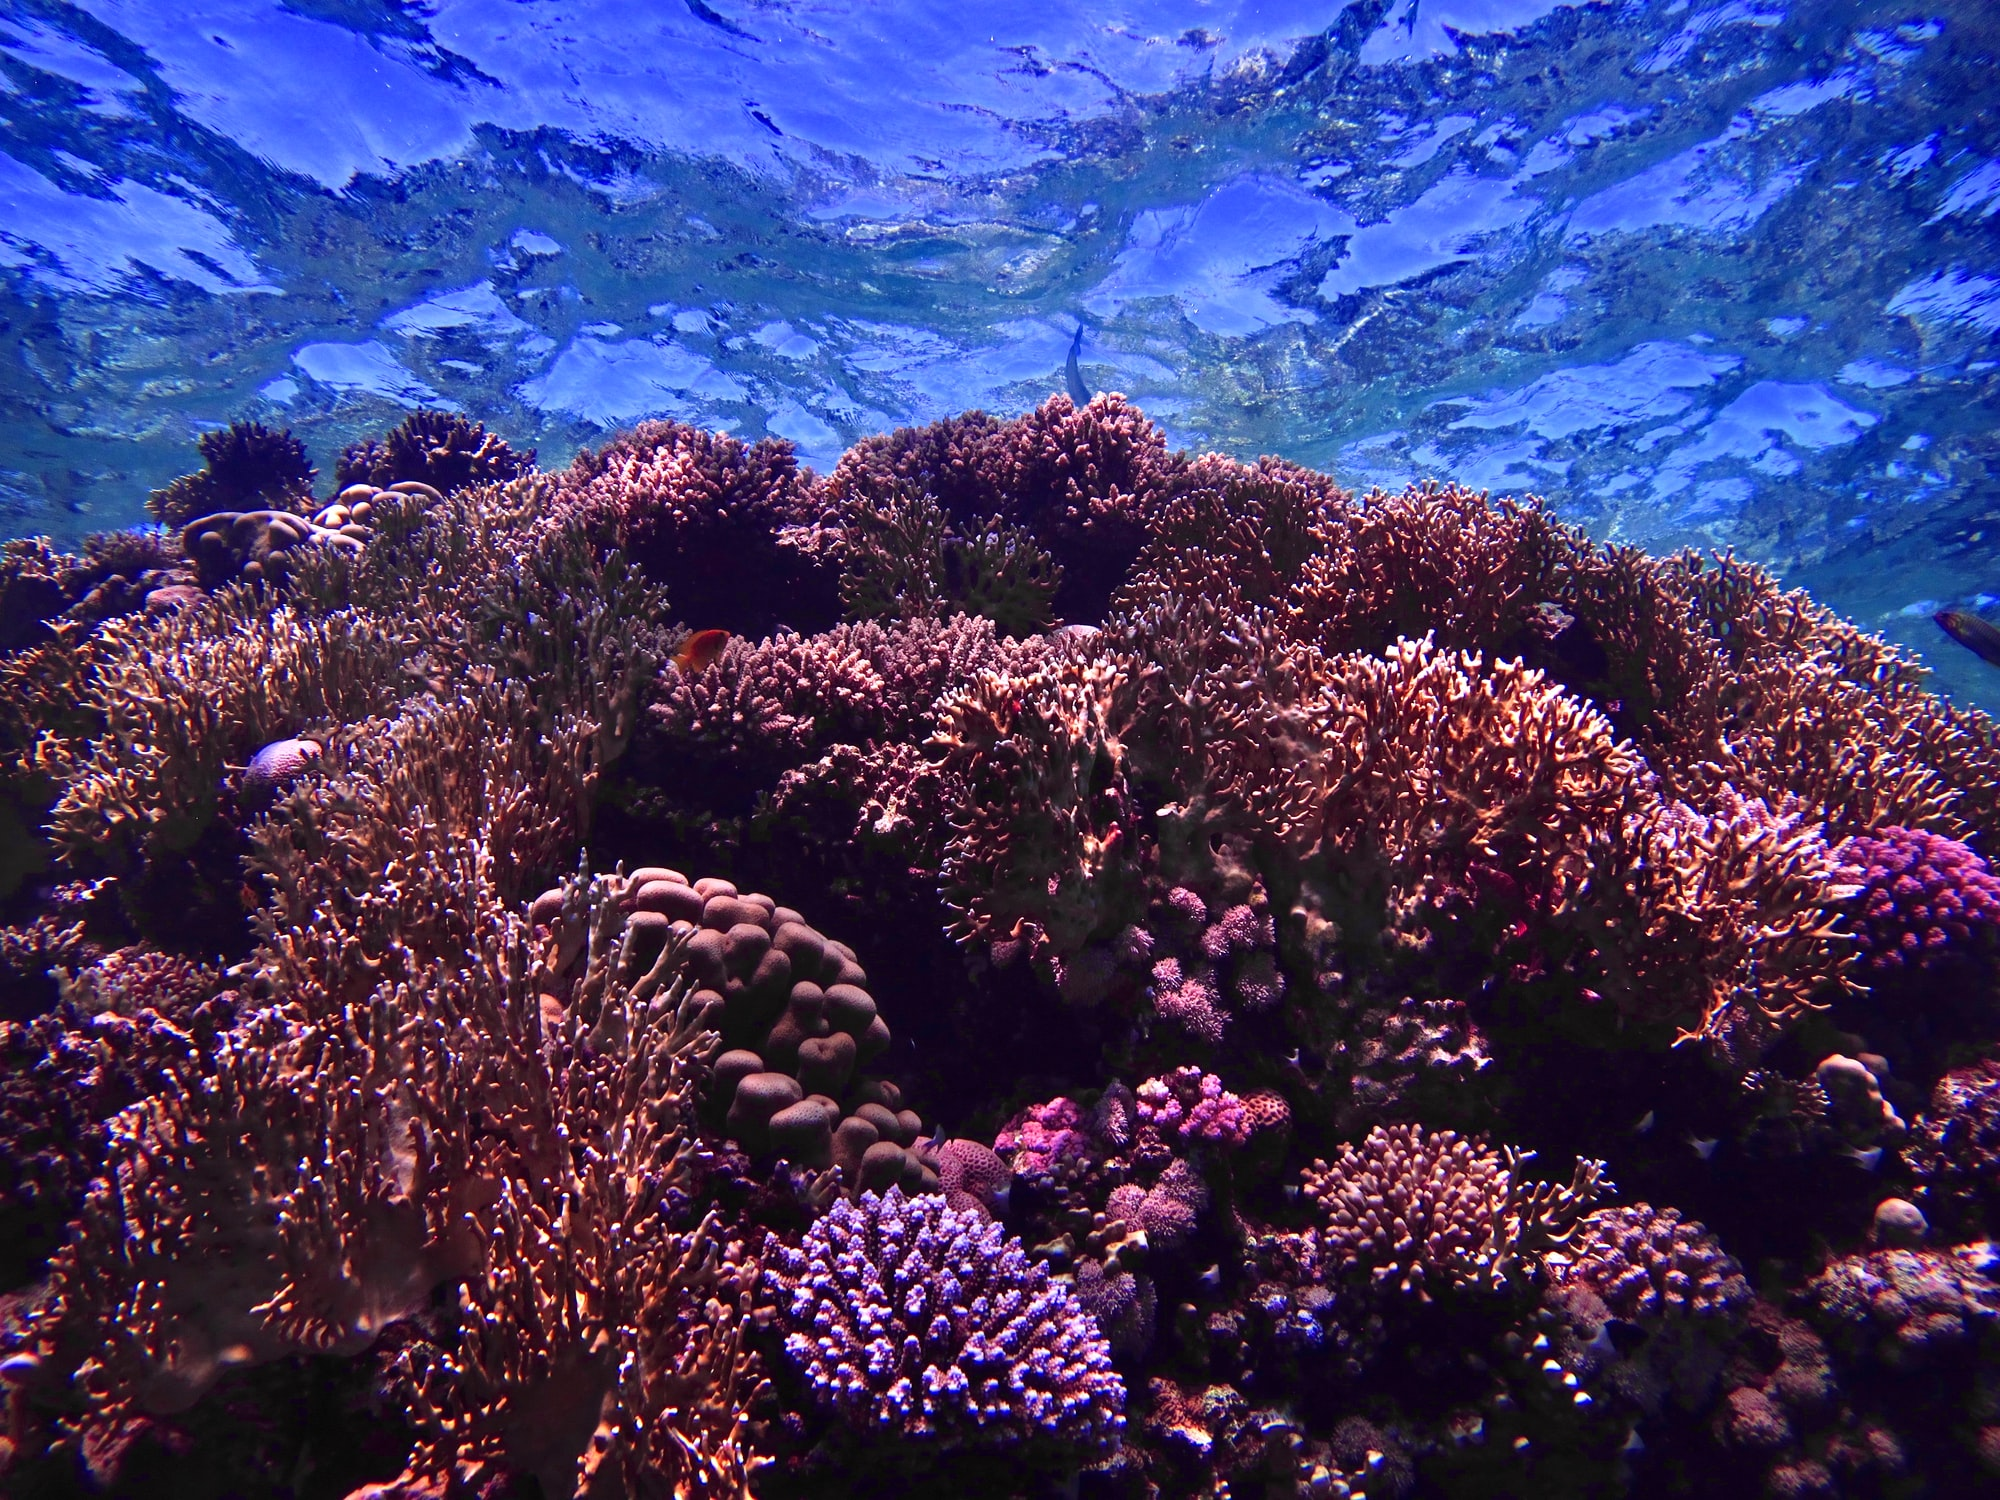 🌊 Scientists make history by becoming the first in the world to reproduce coral in human care